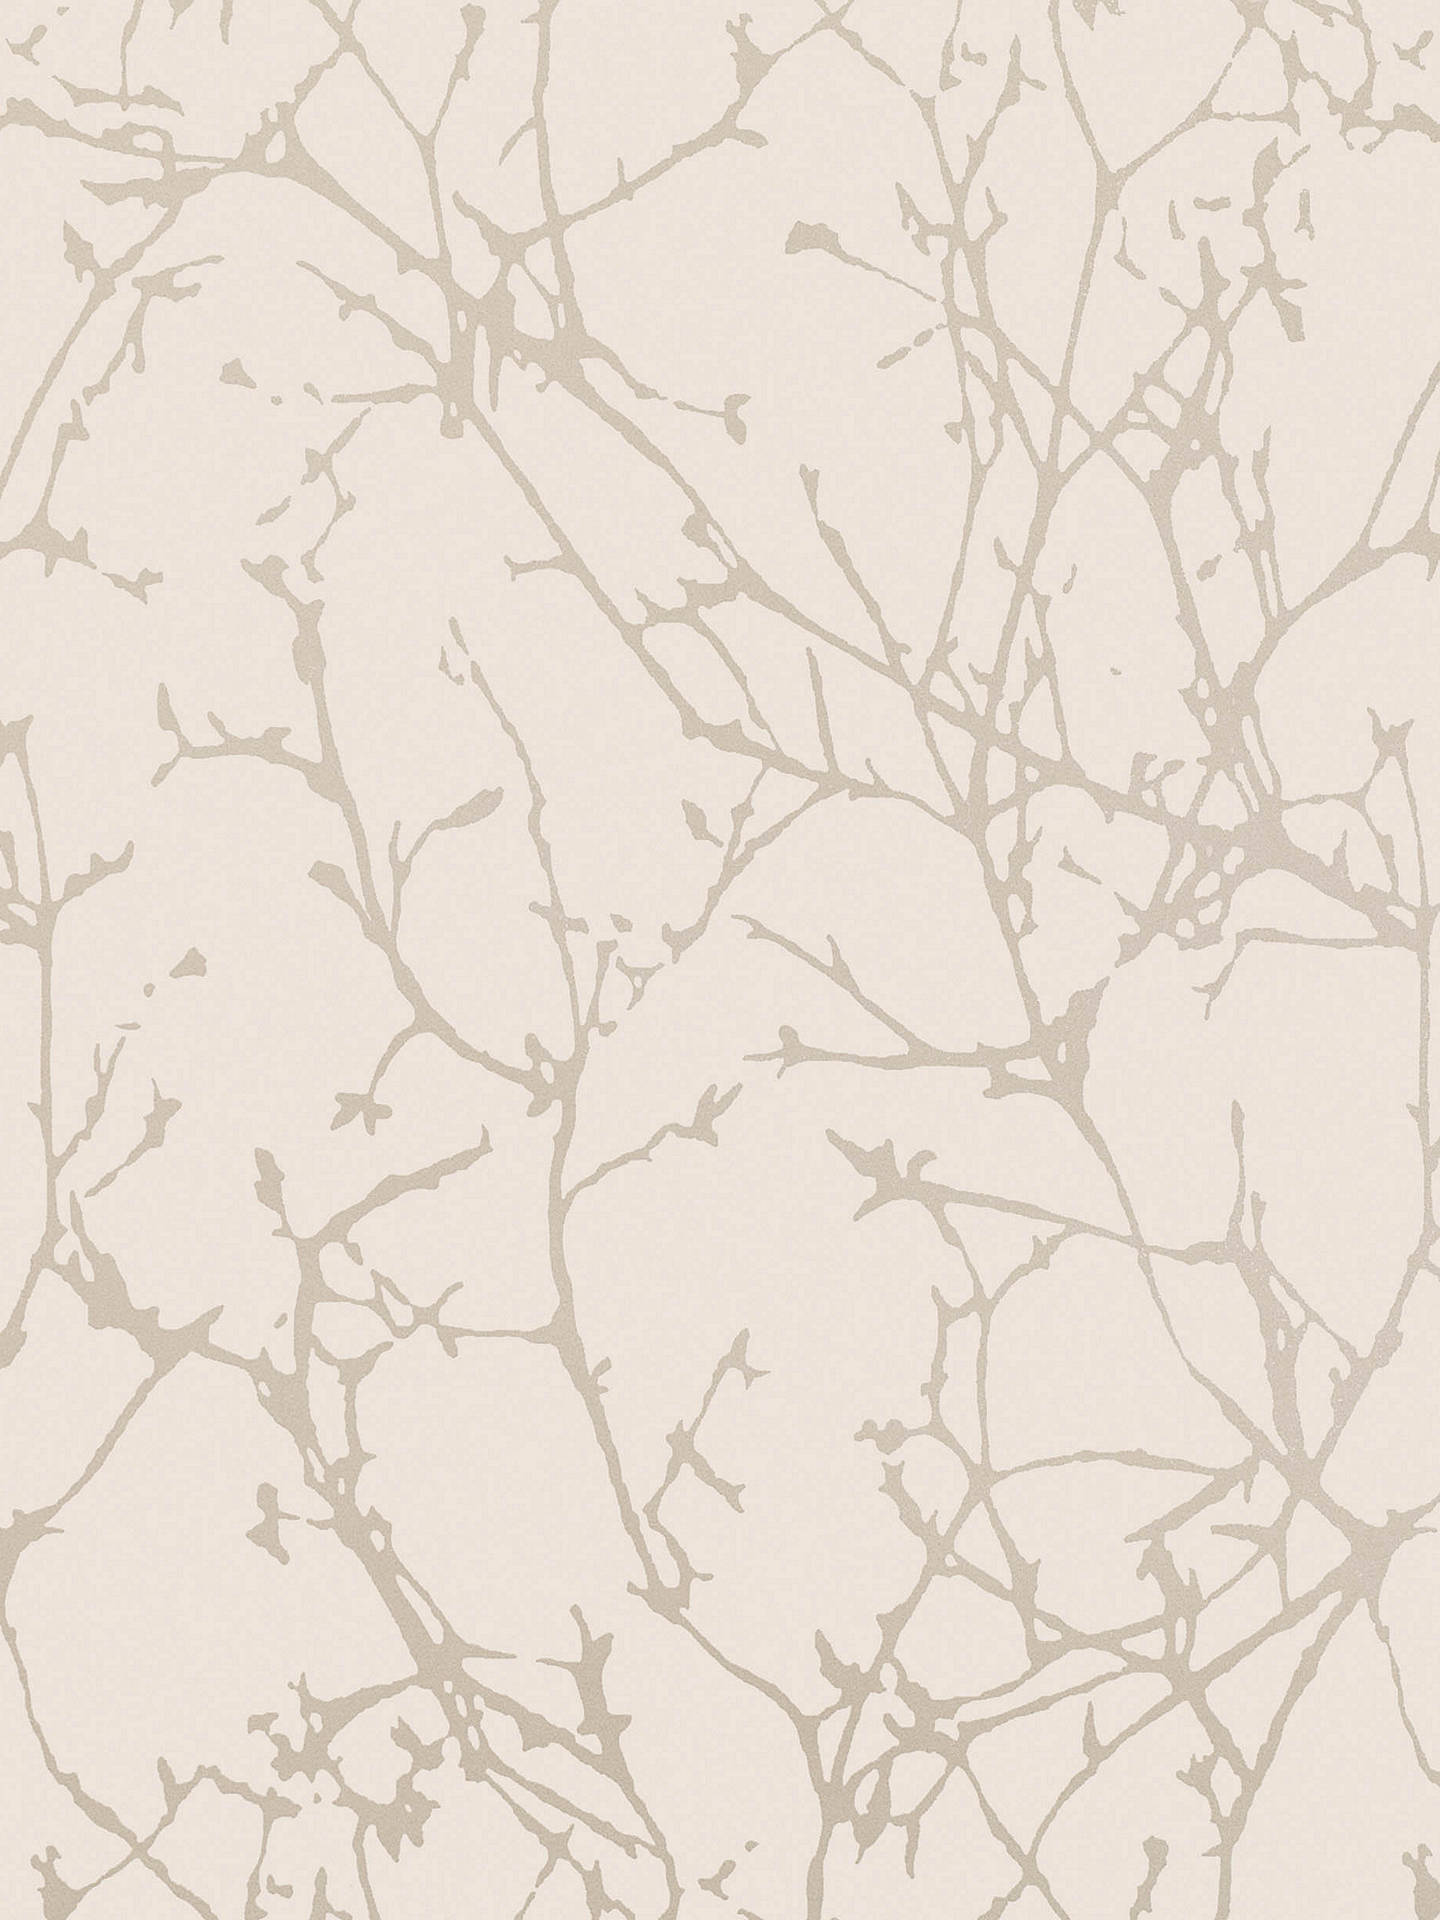 Buy Romo Arbor Paste the Wall Wallpaper, Silver Birch W396/04 Online at johnlewis.com